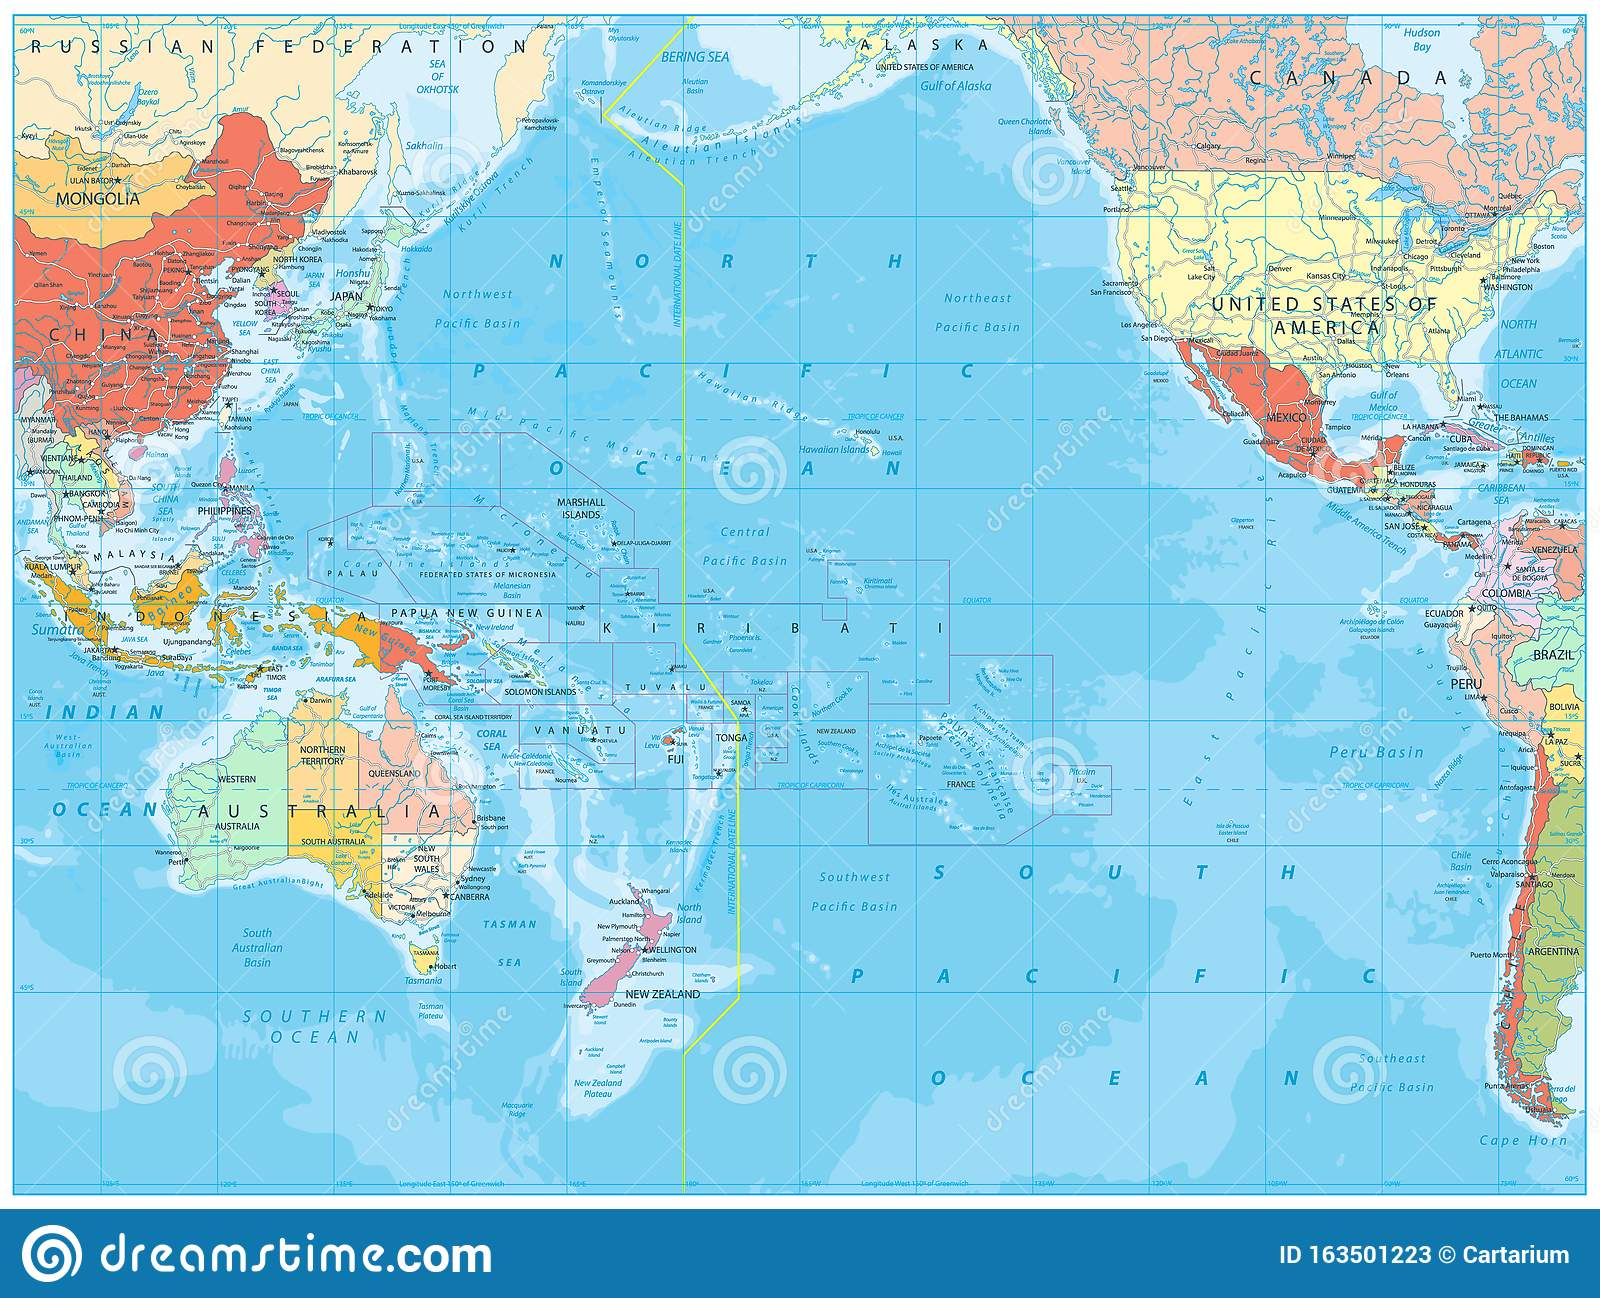 Picture of: Pacific Ocean Political Map And Bathymetry Stock Vector Illustration Of Locations Continents 163501223